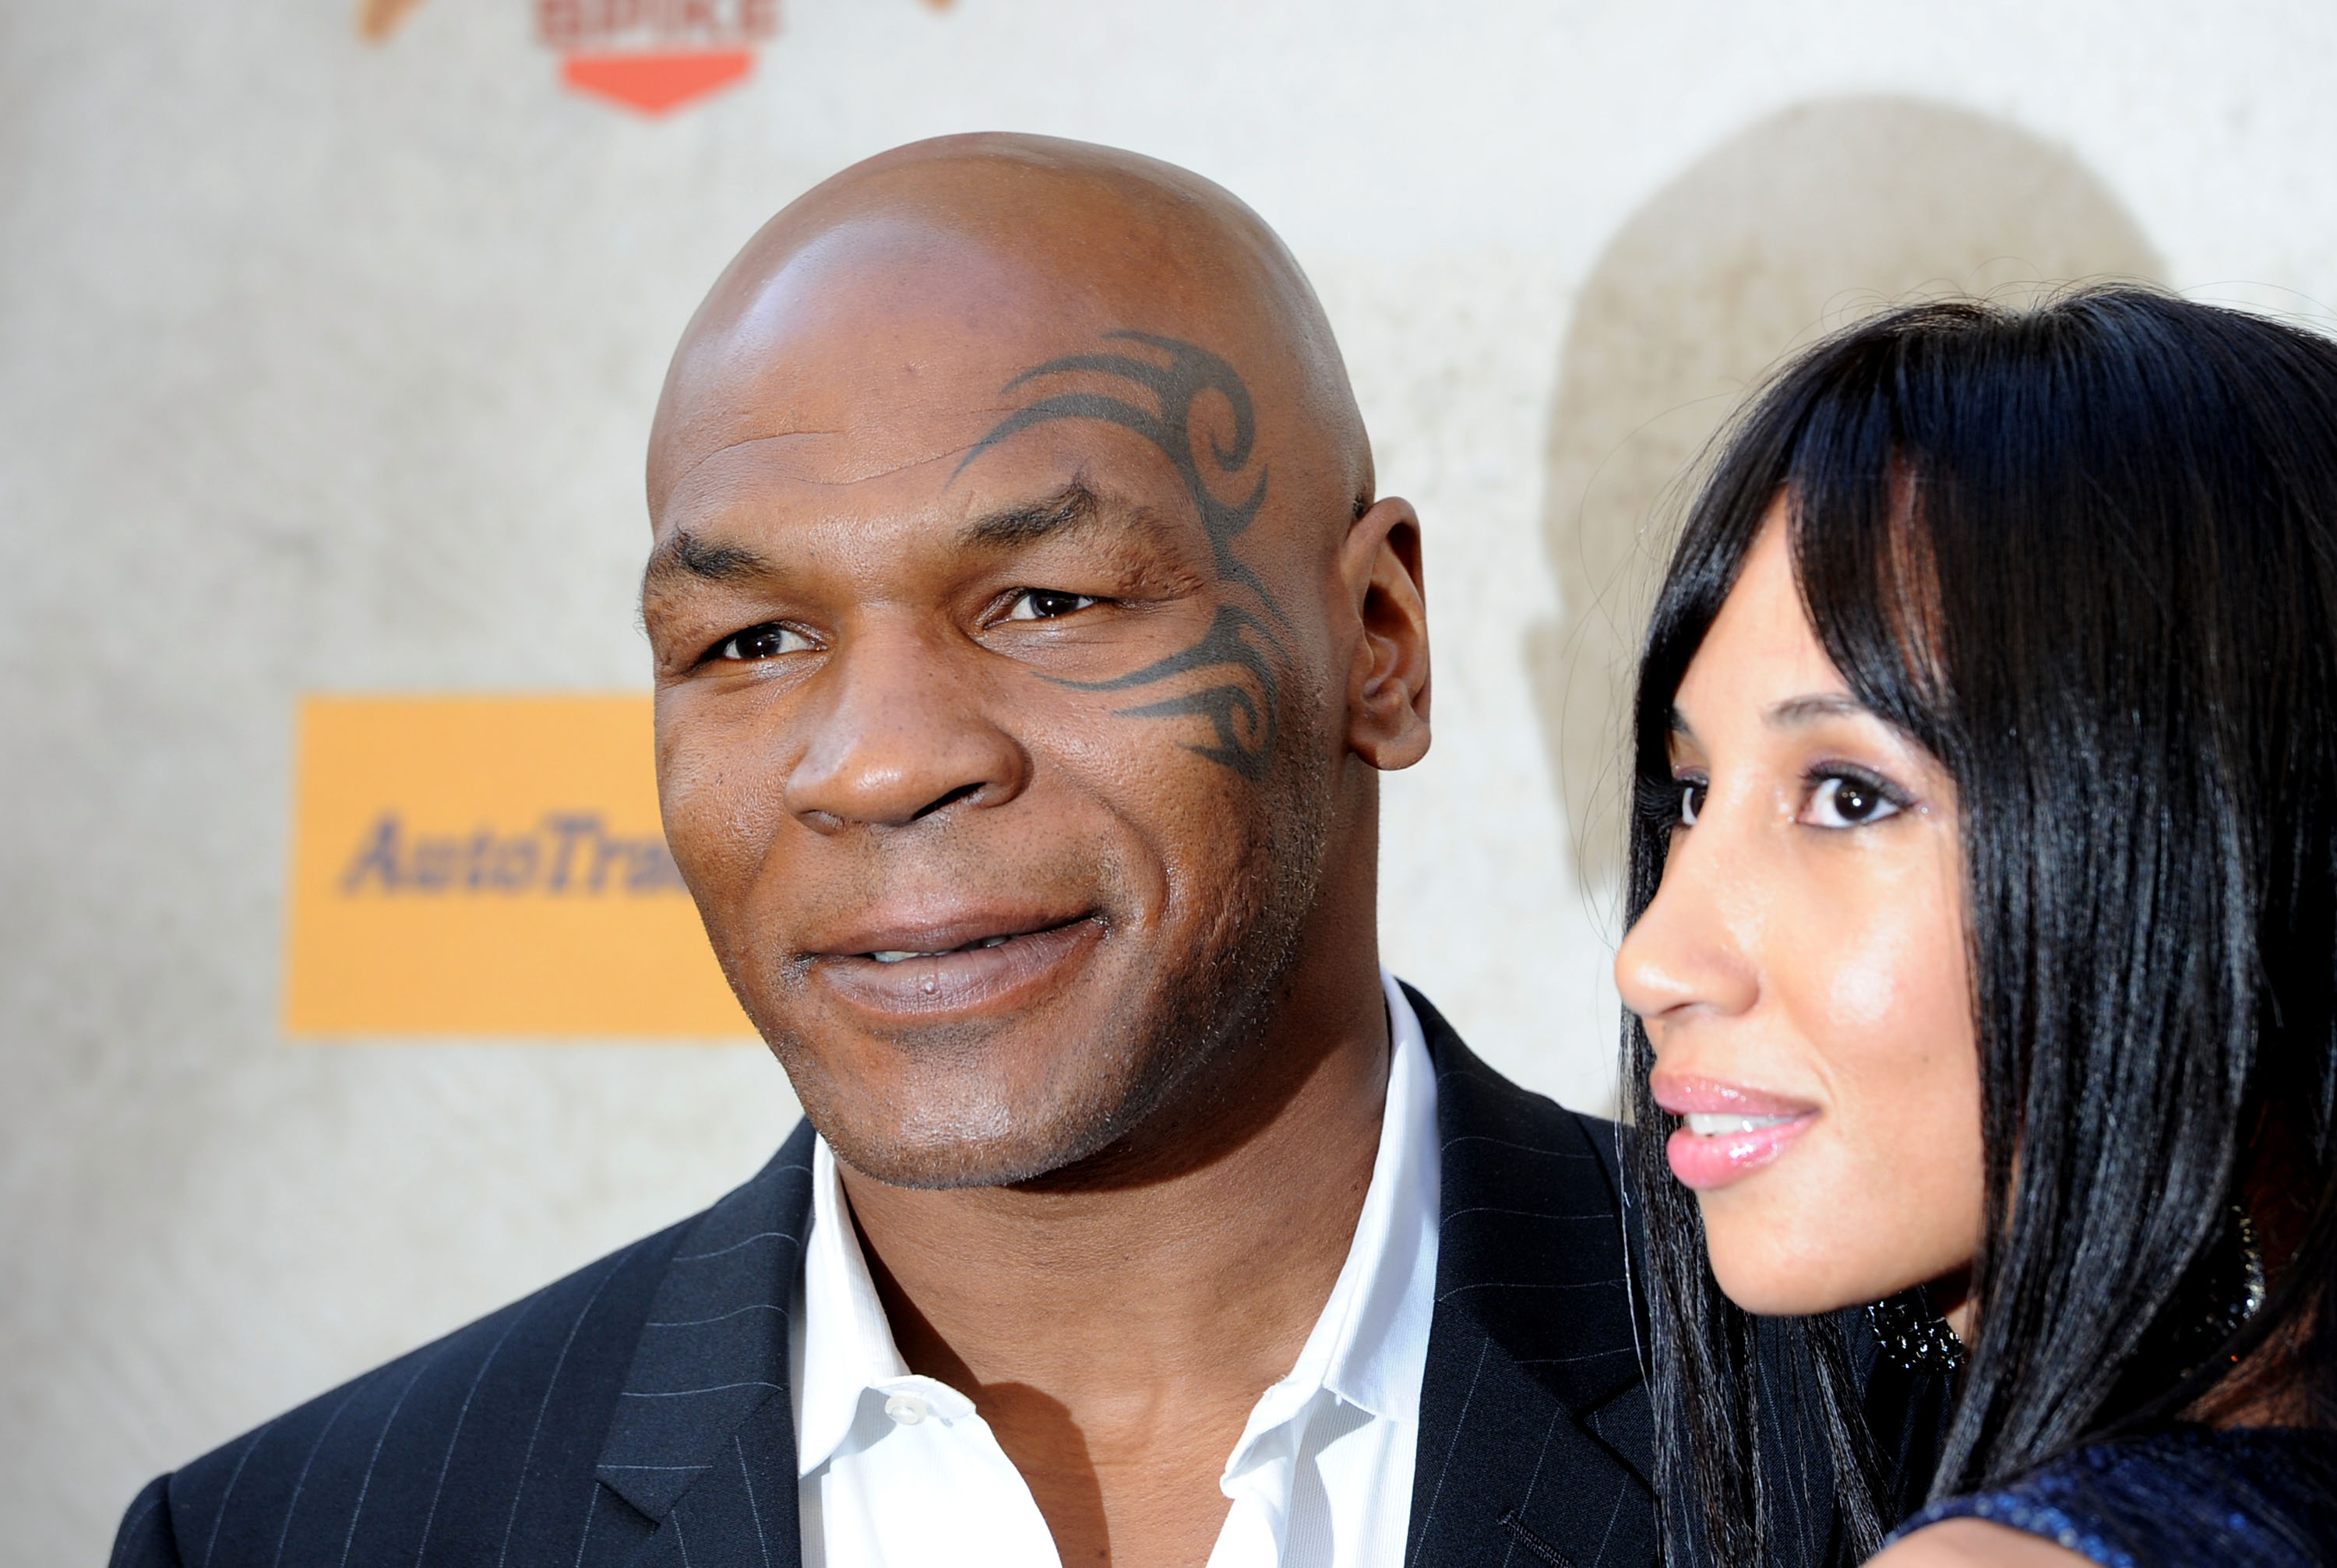 Mike Tyson is afraid to be the best he can be.